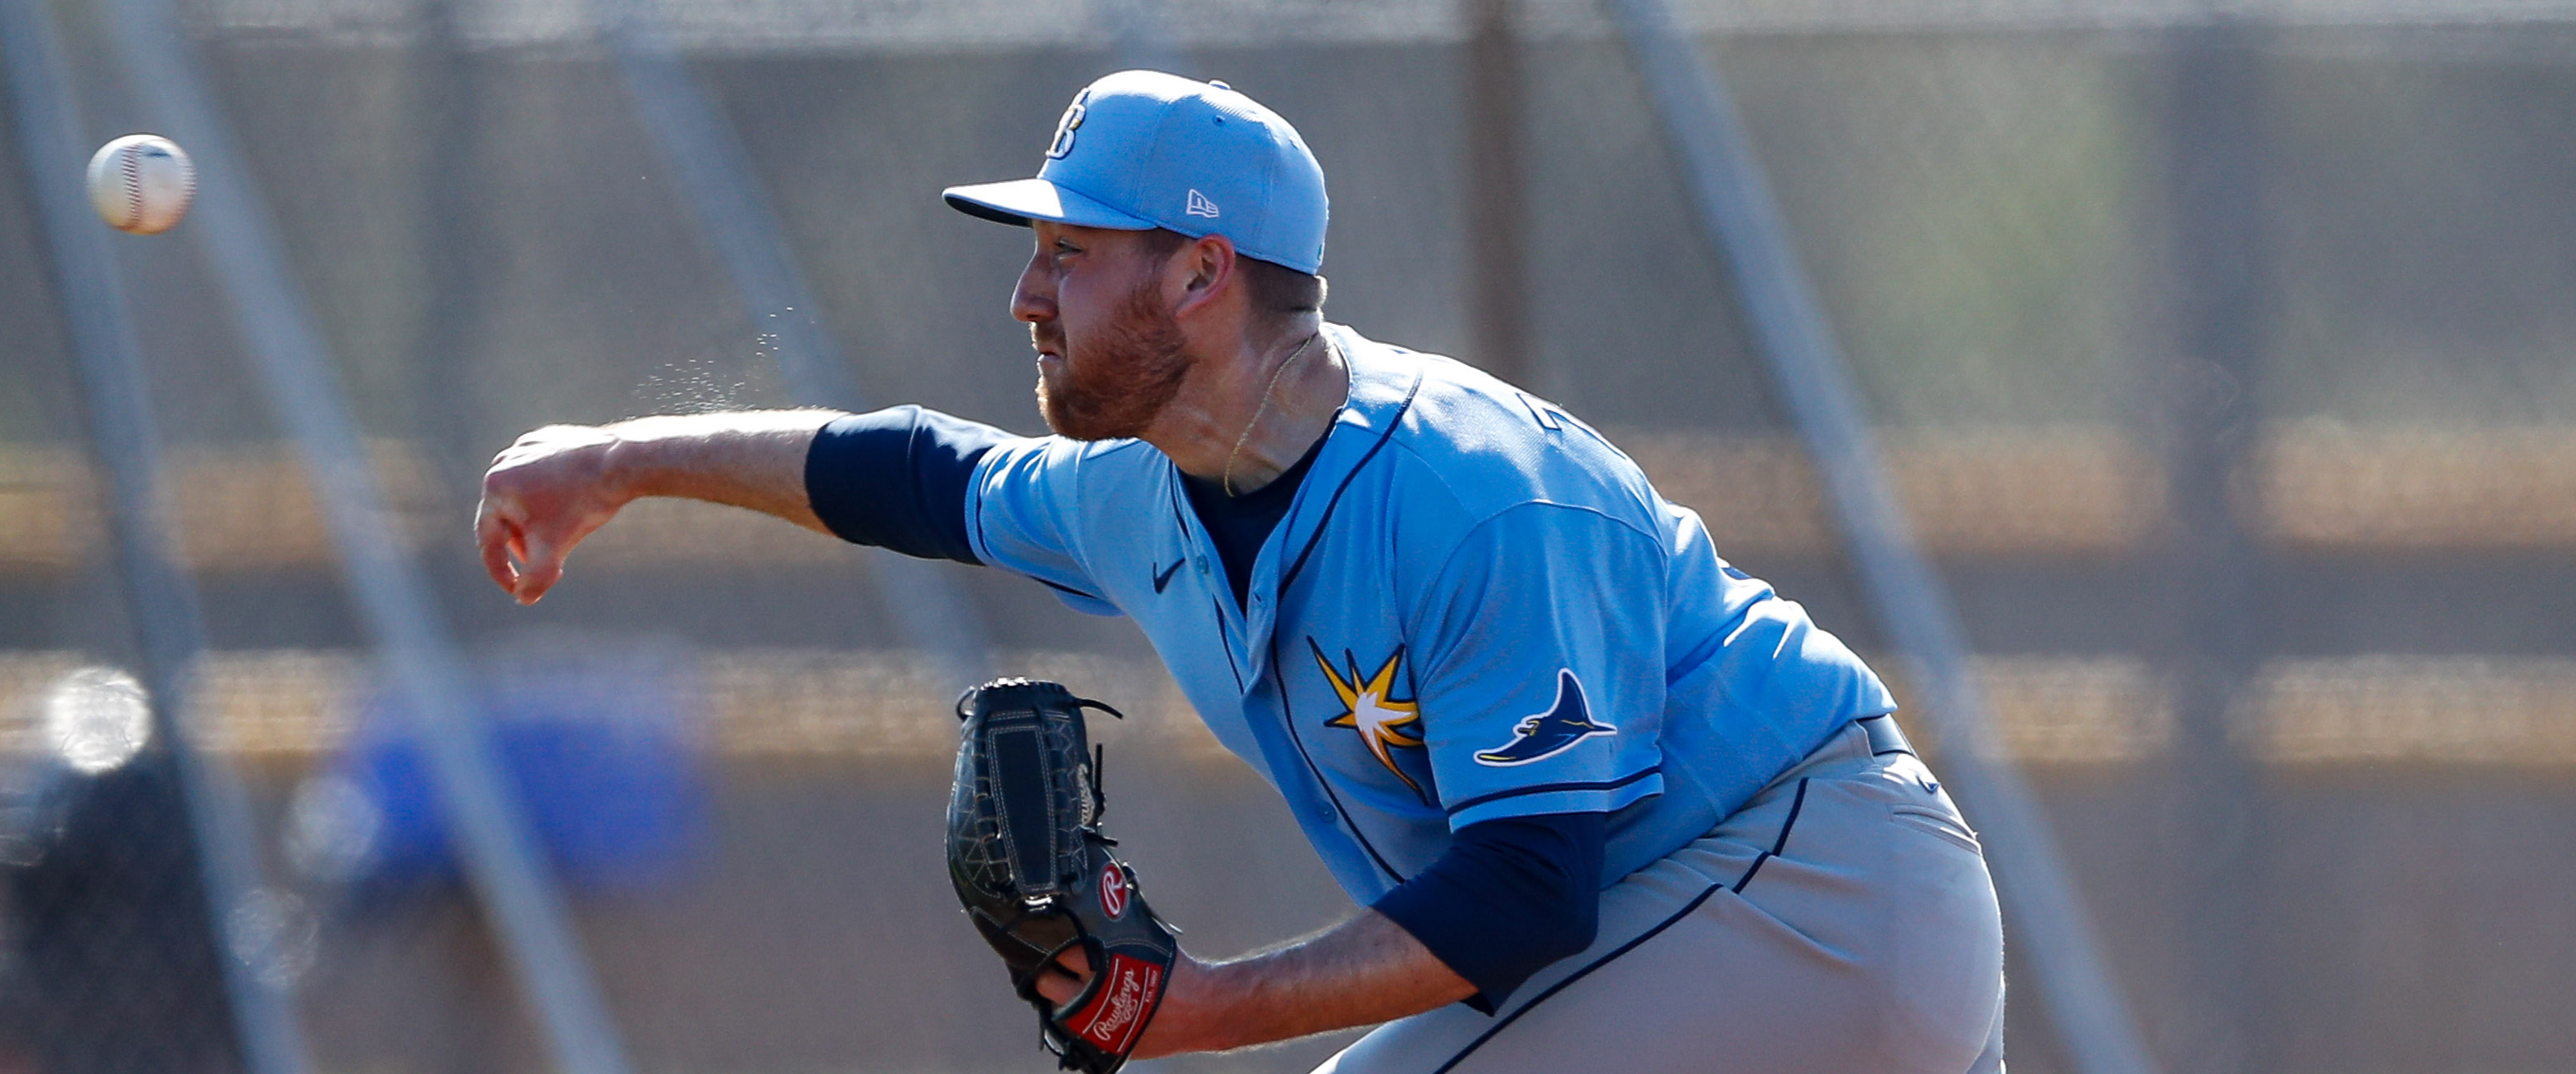 Durham Bulls pitcher hit in the face by line drive forces game to be called off